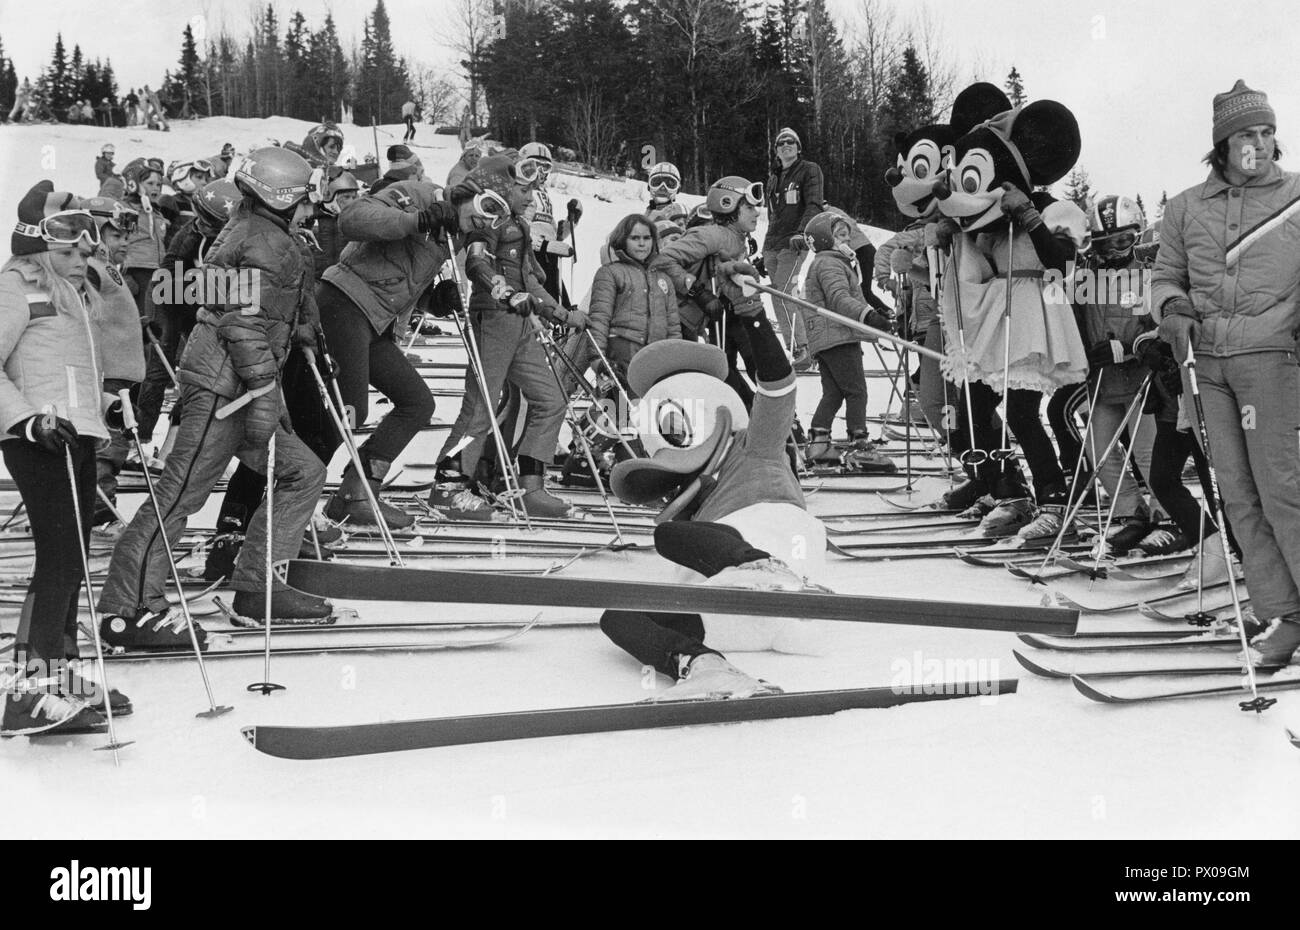 Downhill skiing 1970s. Donald Duck, Mickey and Minnie Mouse are hosting a childrens downhill skiing event 1976. Sweden - Stock Image